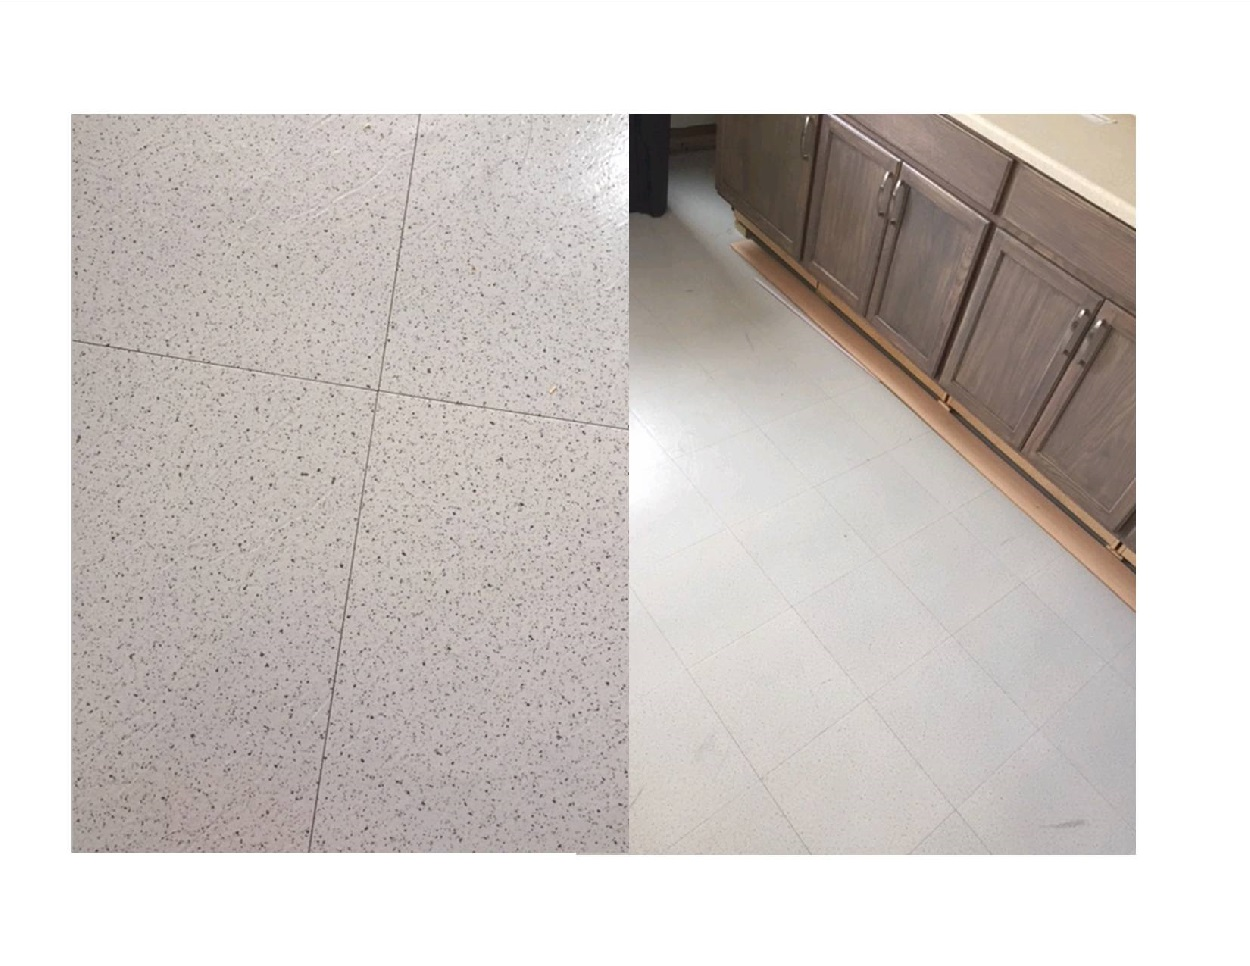 Peel stick floor tile reviews salt pepper garage floor tile dailygadgetfo Choice Image